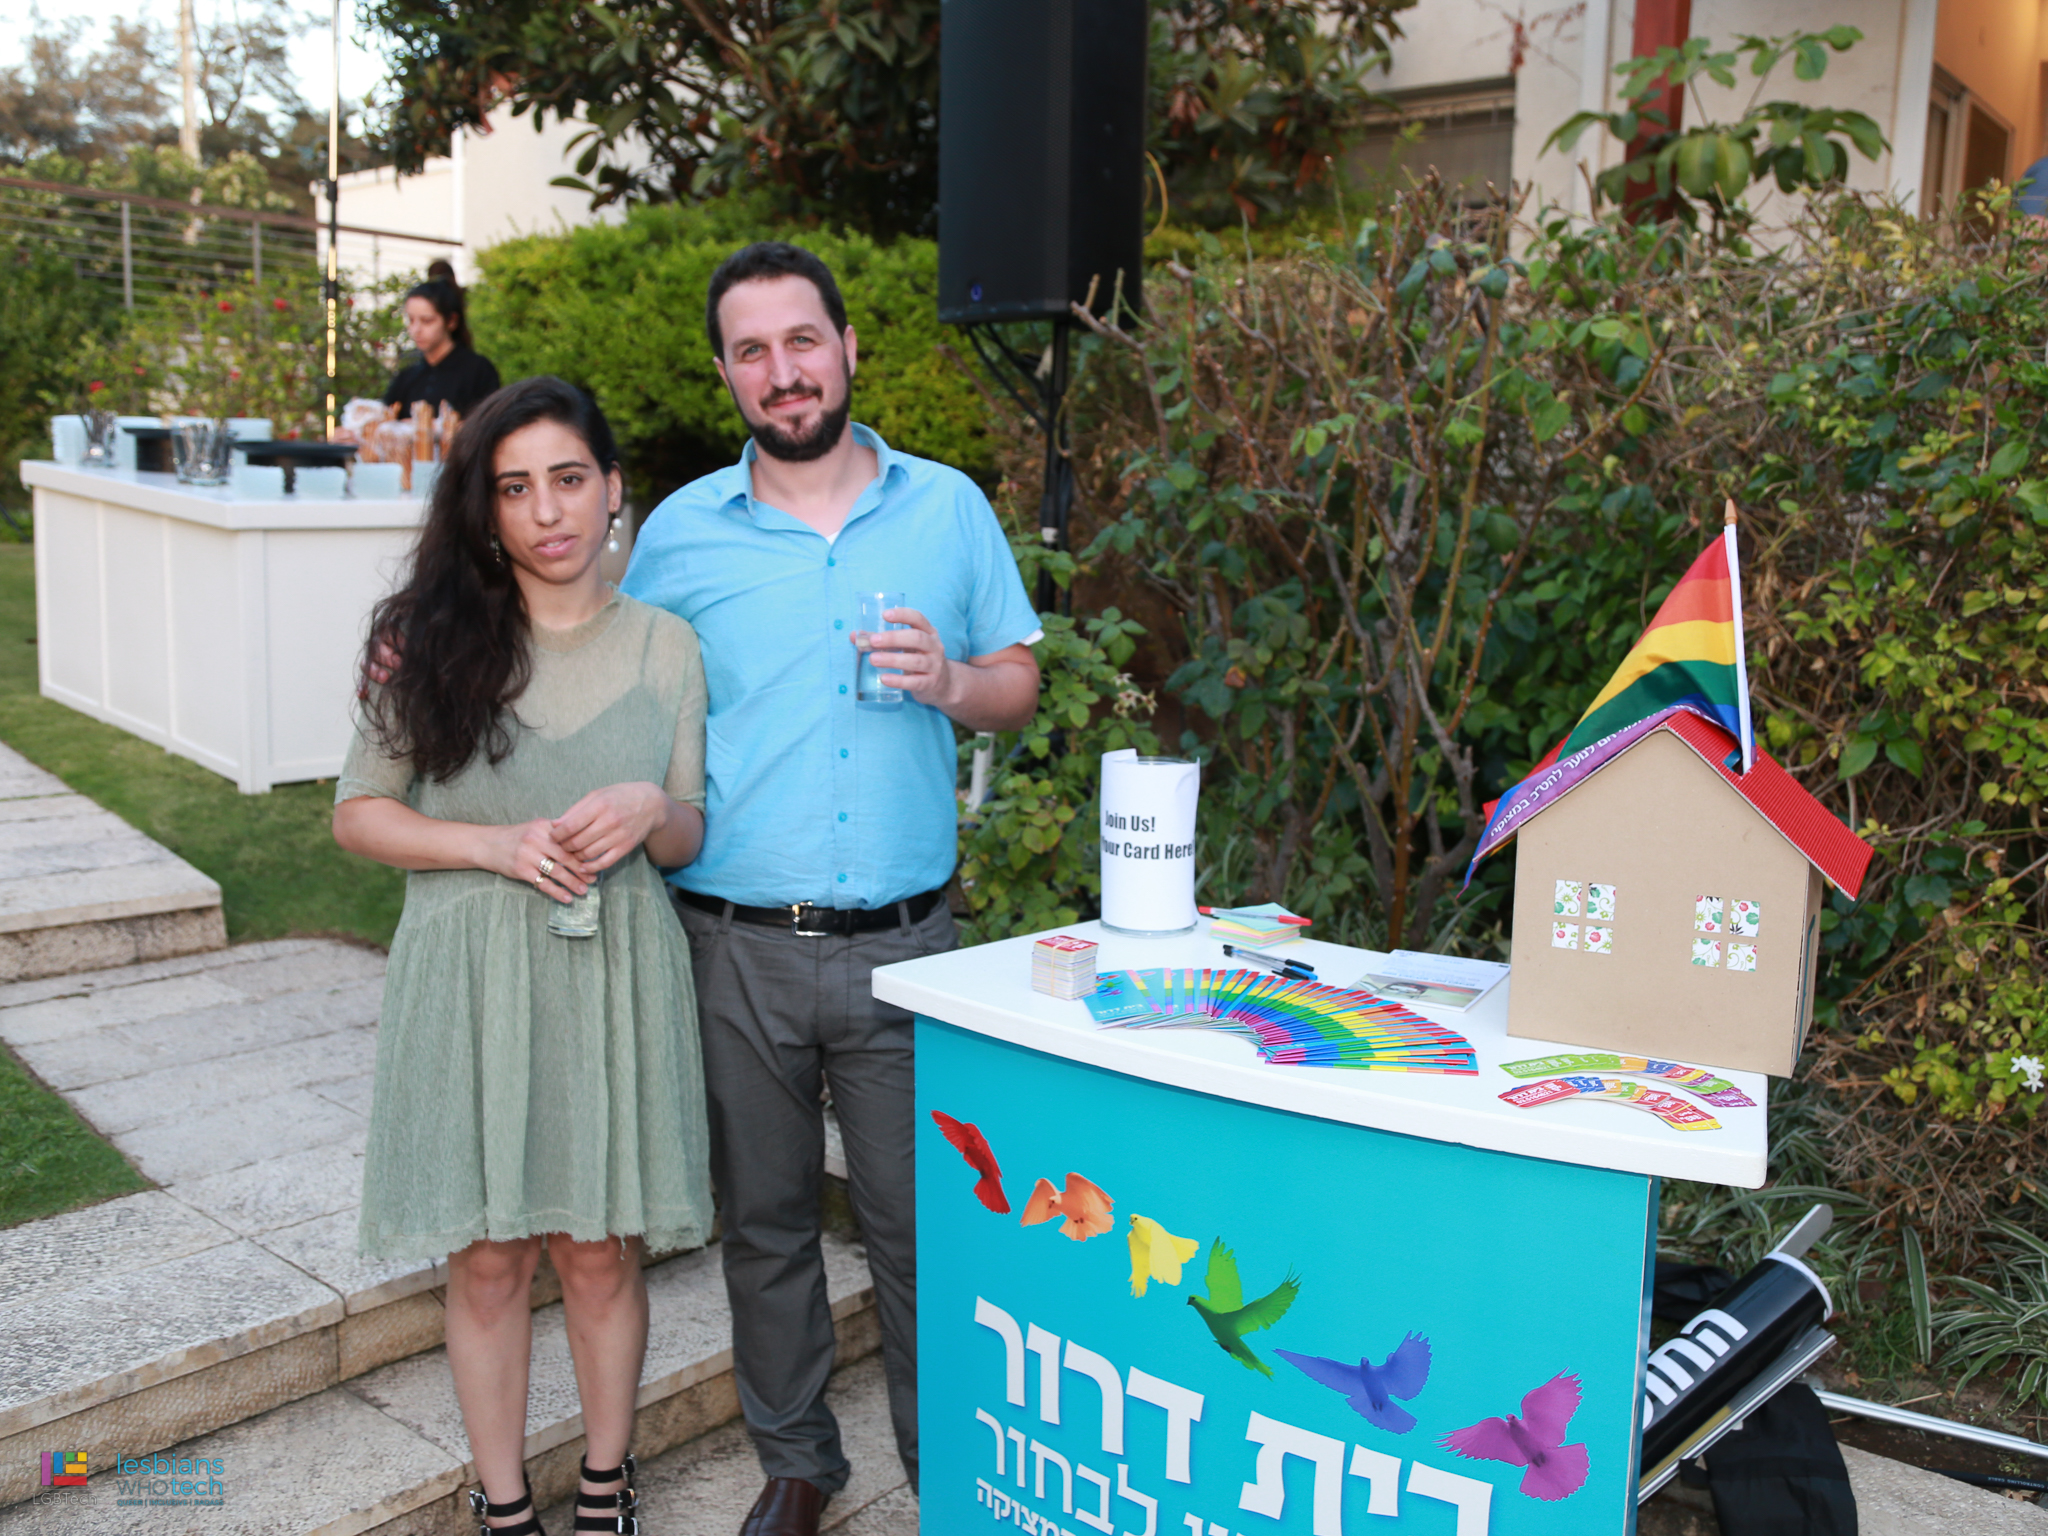 LGBTech, Love is Great Britain, LGBT, Pride 2016, Israel, Lesbians Who Tech, Beit Drot